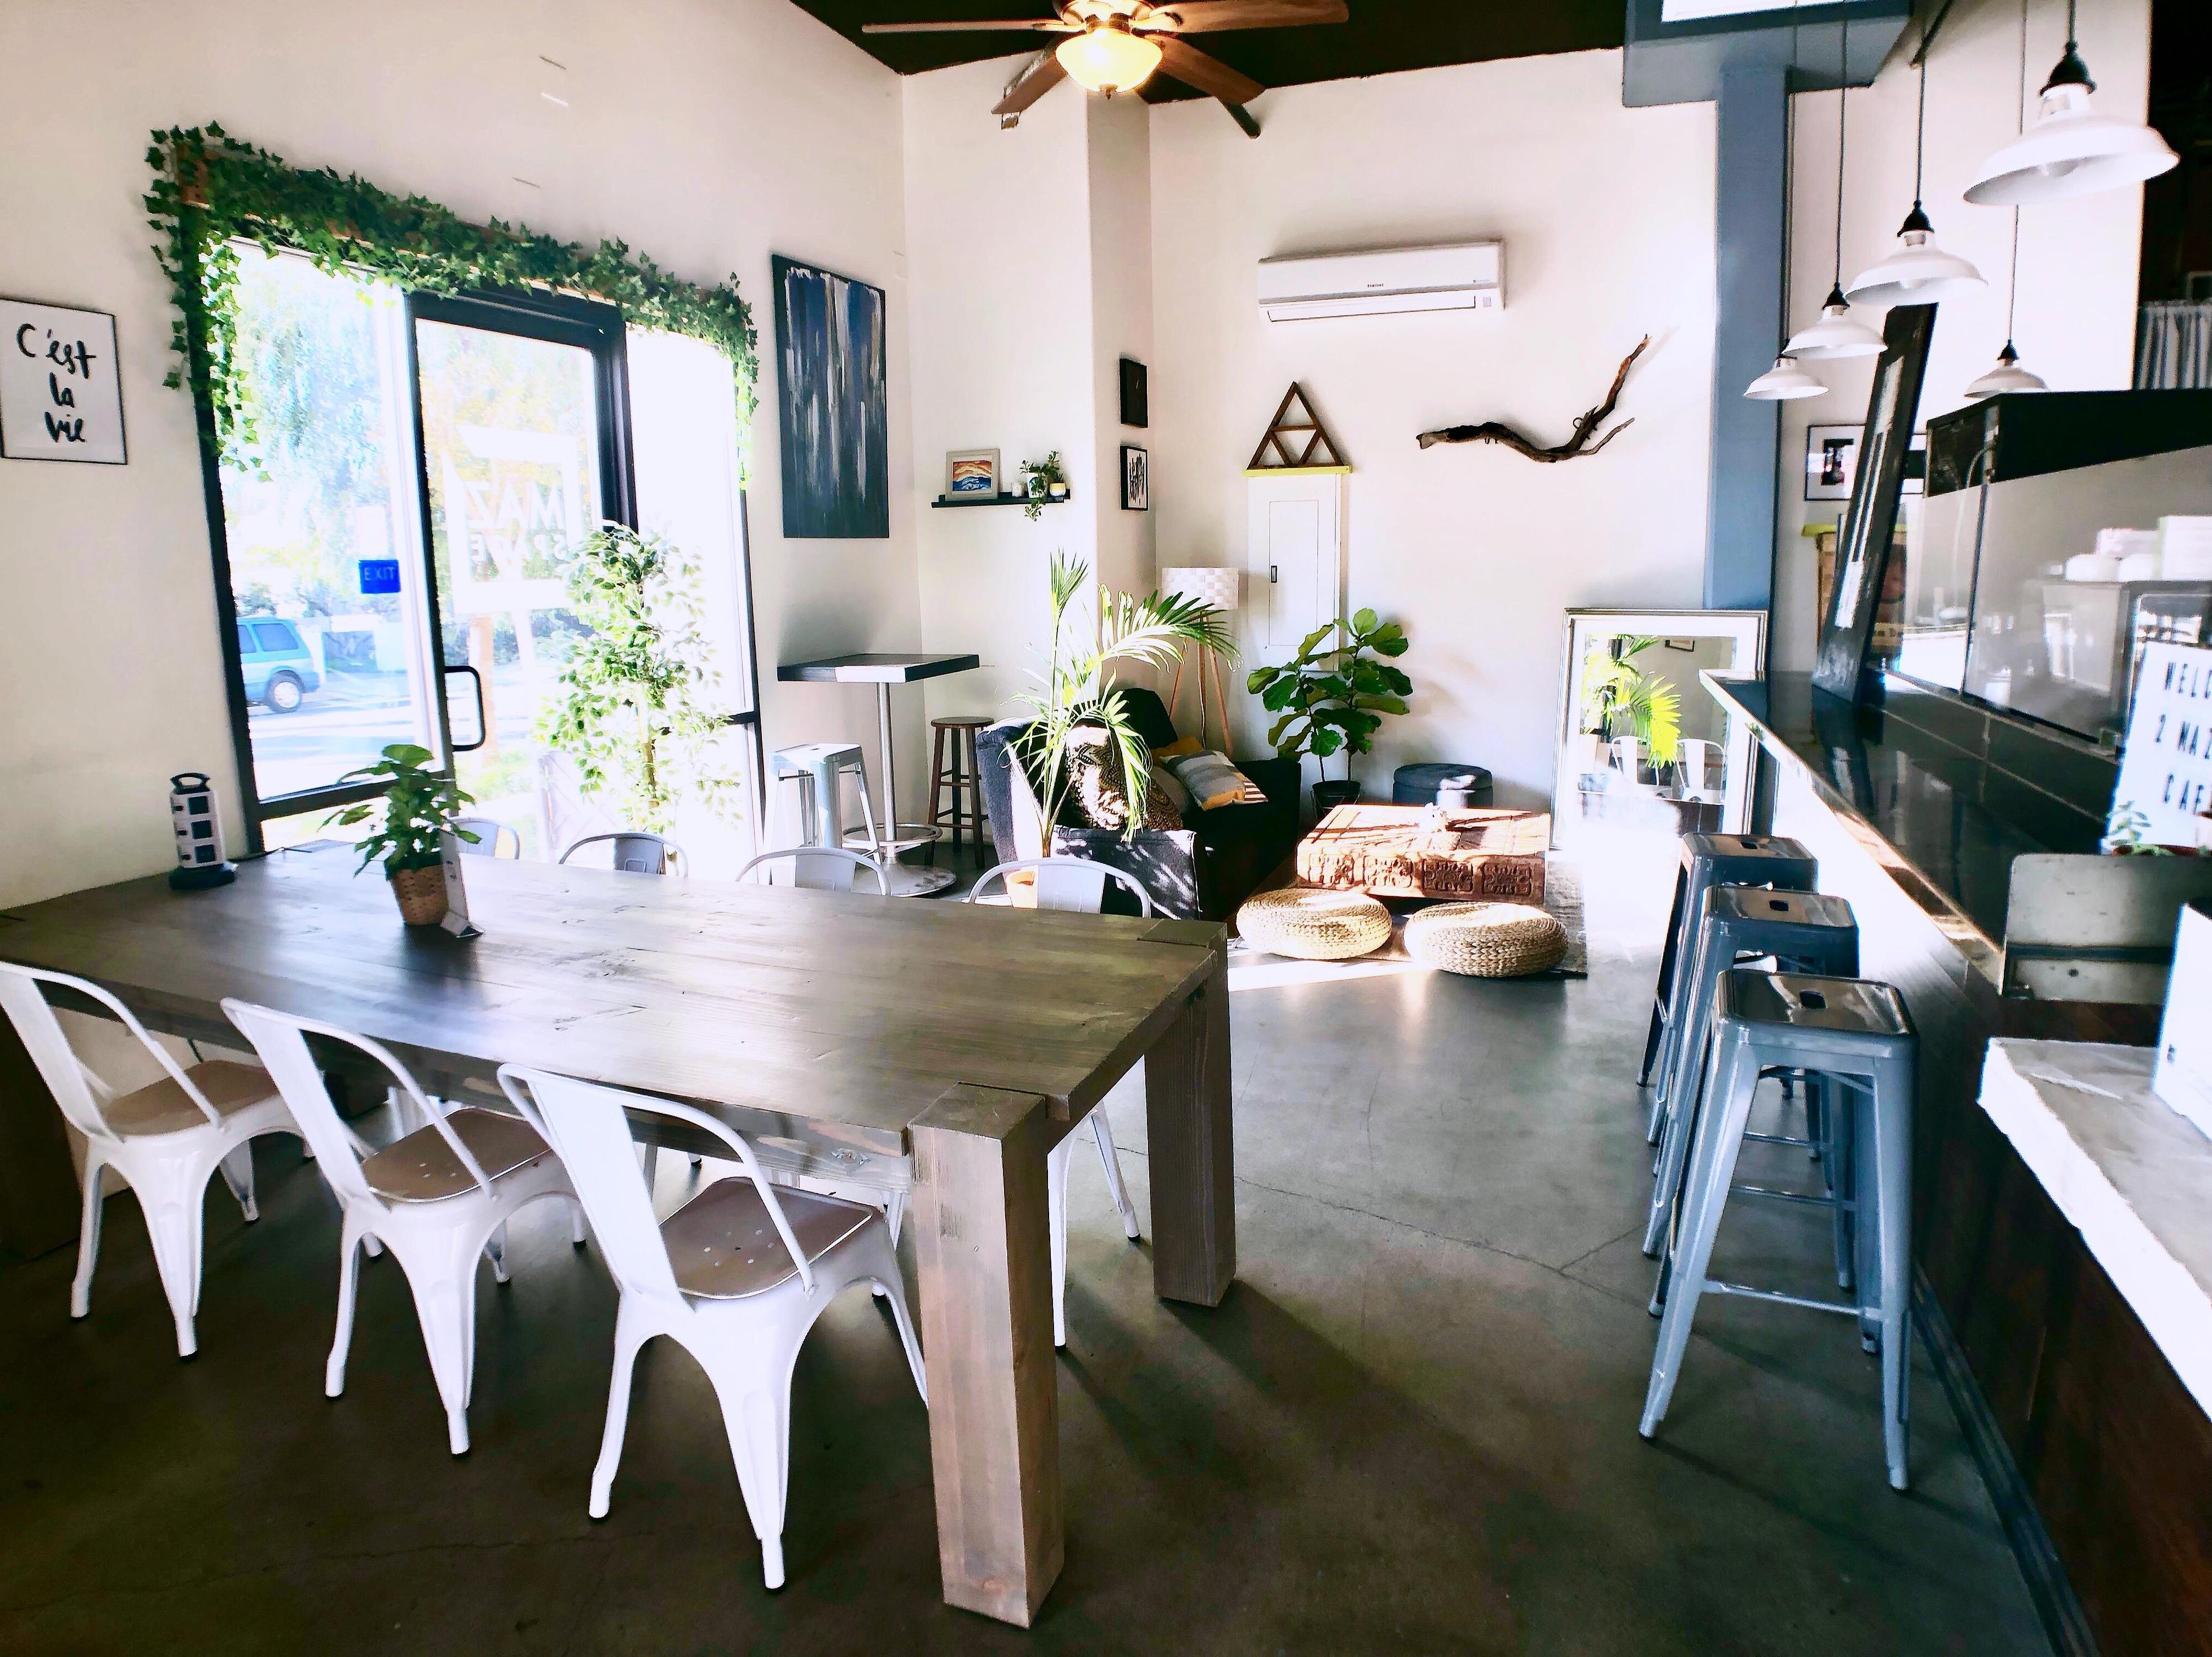 MAZ Coworking Space - MAZ Space